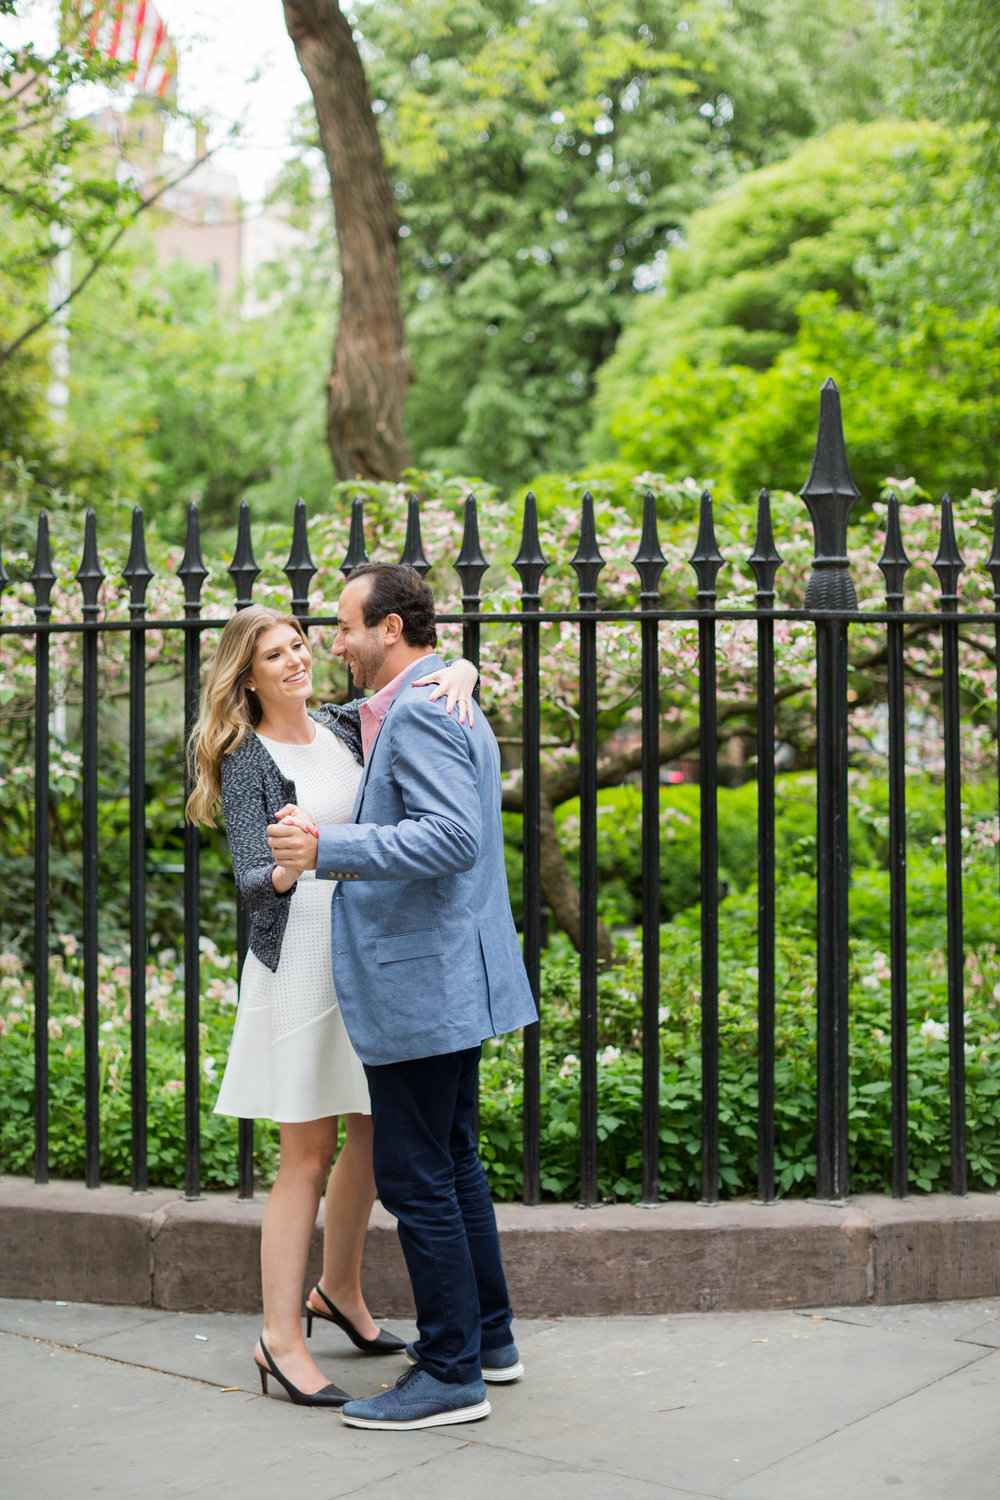 Melissa Kruse Photography - Courtney & JP Gramercy NYC Engagement Photos-164.jpg